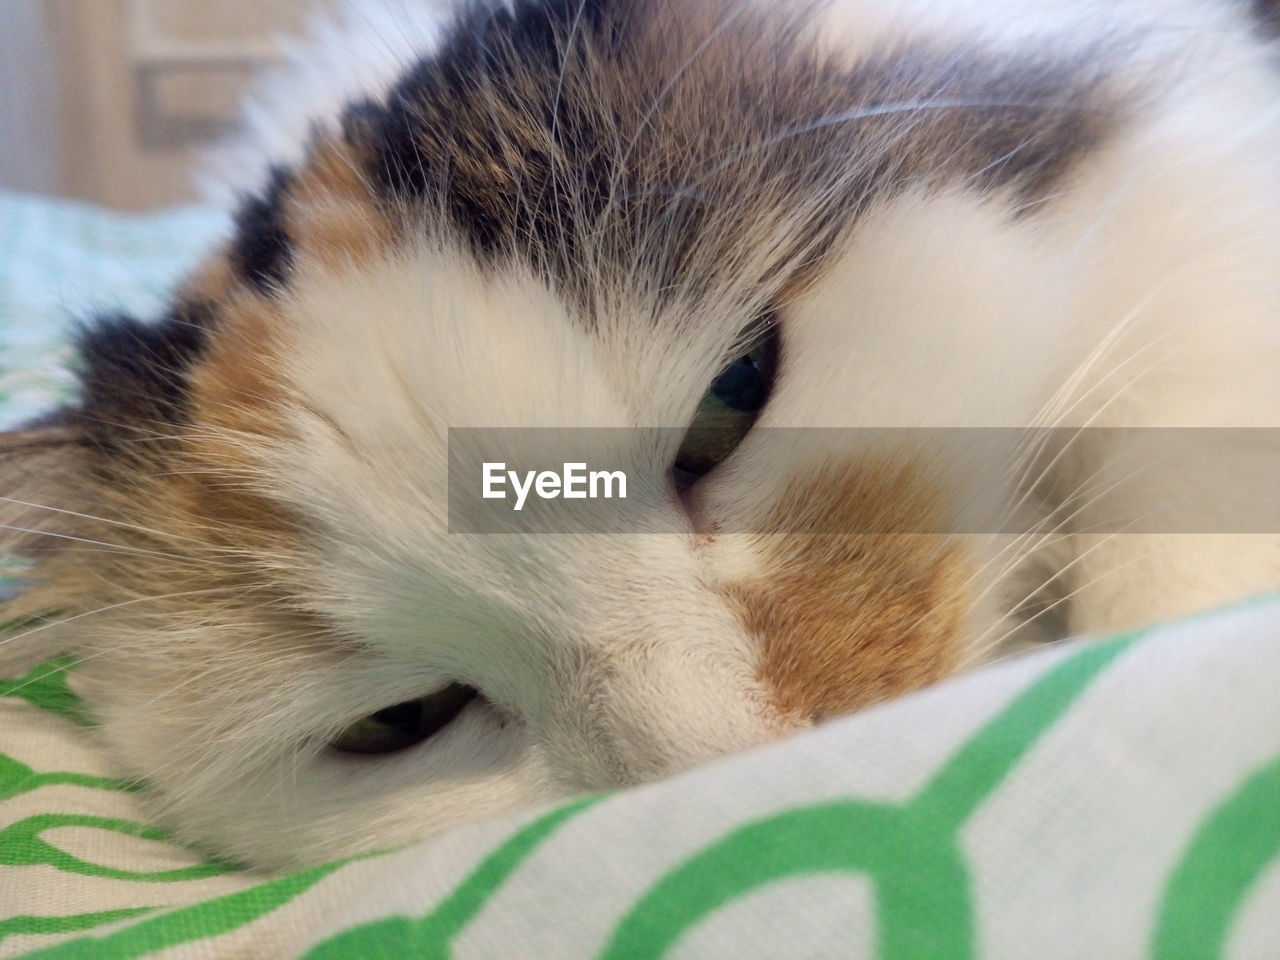 domestic, animal themes, mammal, pets, animal, one animal, domestic animals, close-up, vertebrate, relaxation, animal body part, cat, feline, indoors, domestic cat, no people, animal head, furniture, bed, whisker, animal eye